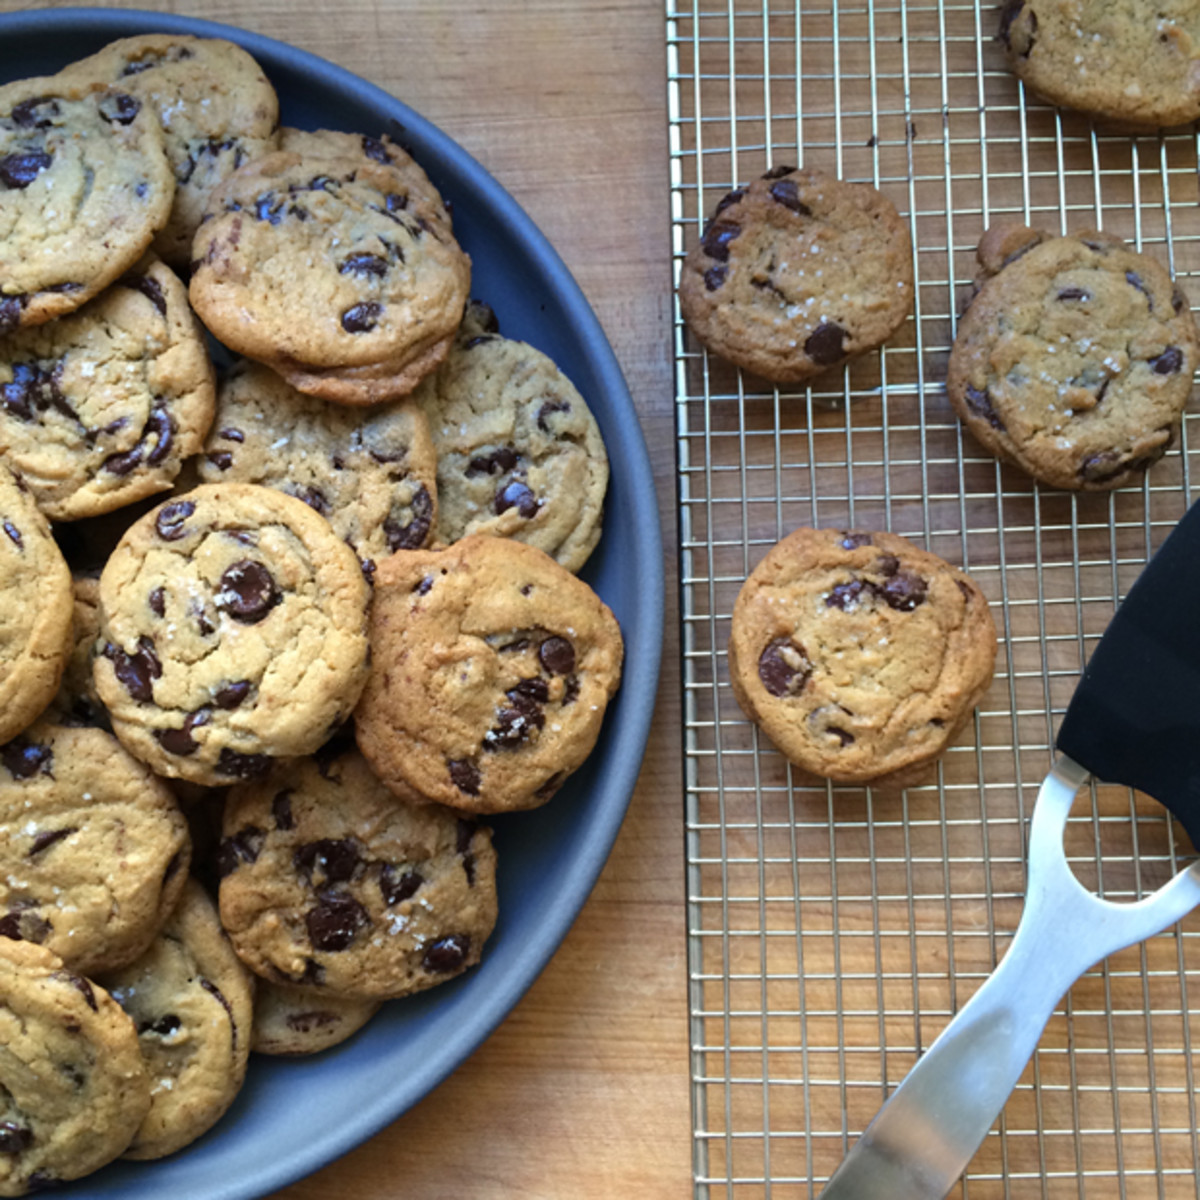 {The Best Chocolate Chip Cookies Ever I brought to my friend's Emmys party}